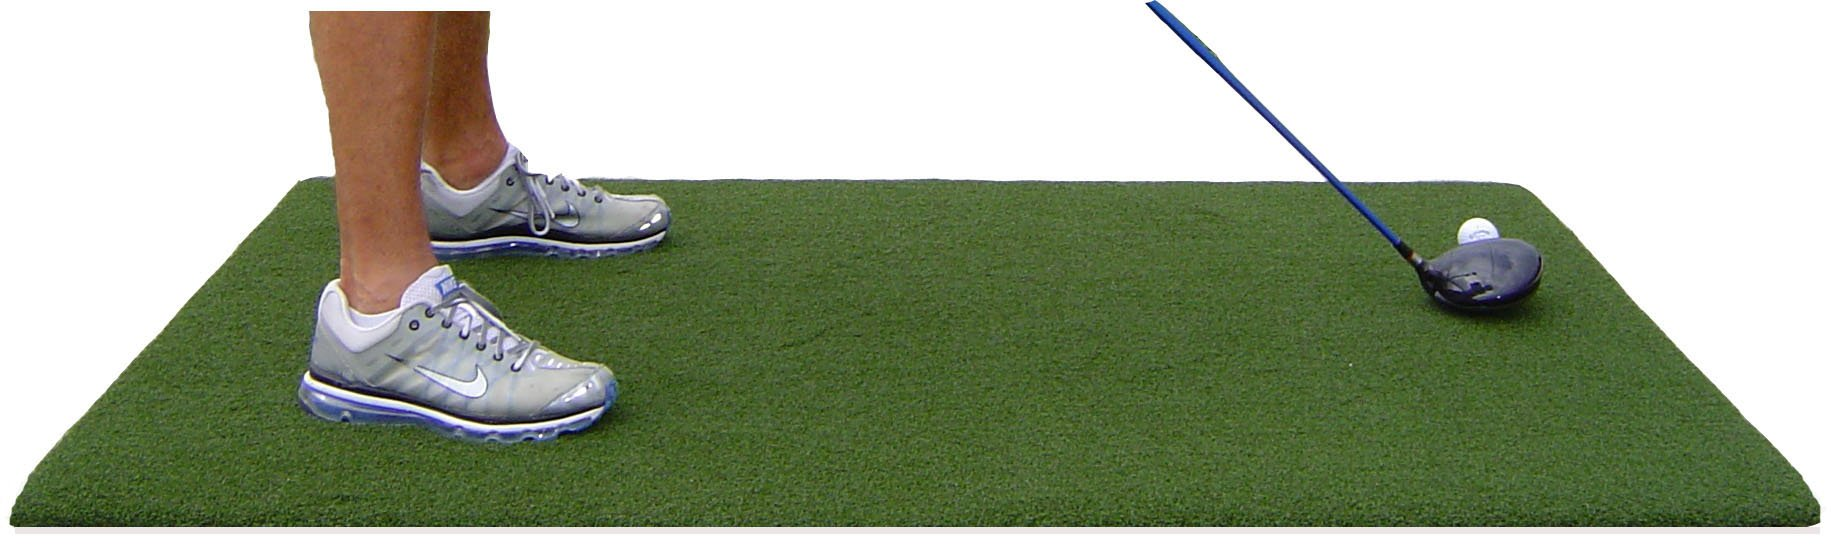 PGM4860 4' x 5' Emerald Par Golf Mat by All Turf Mats (Image #1)